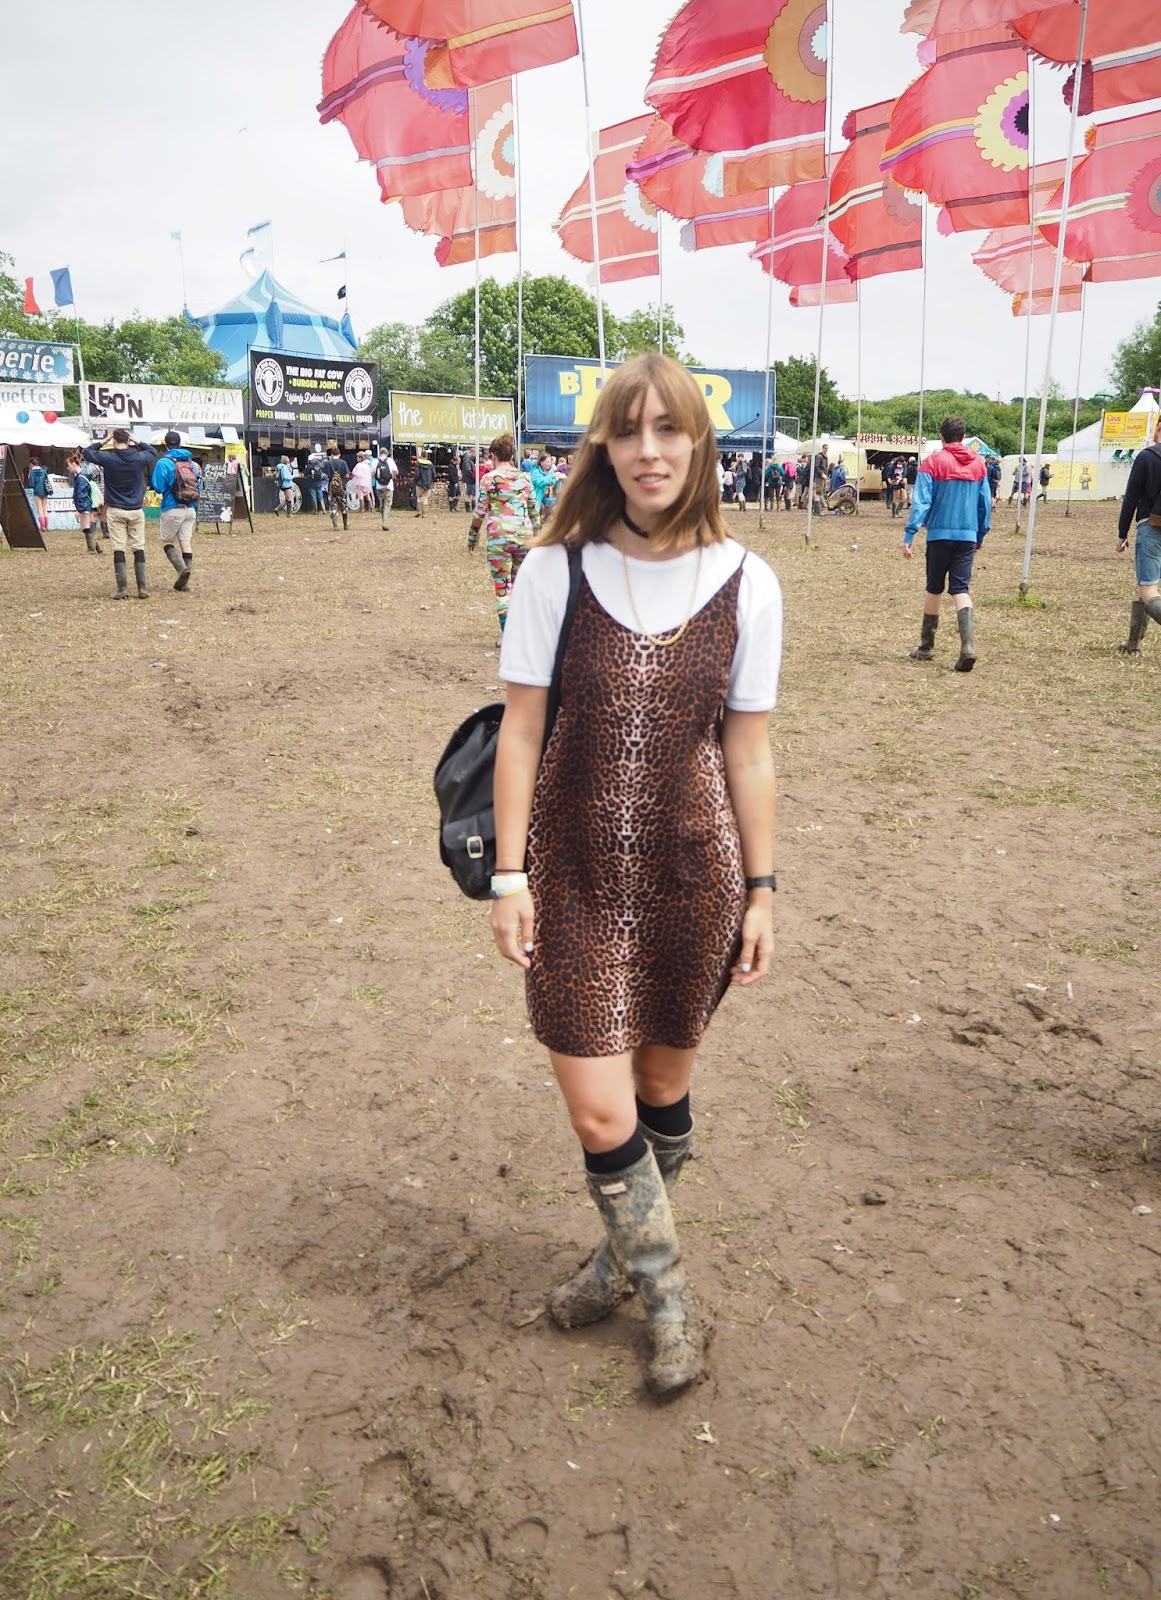 Nineties festival outfit at Glastonbury 2016